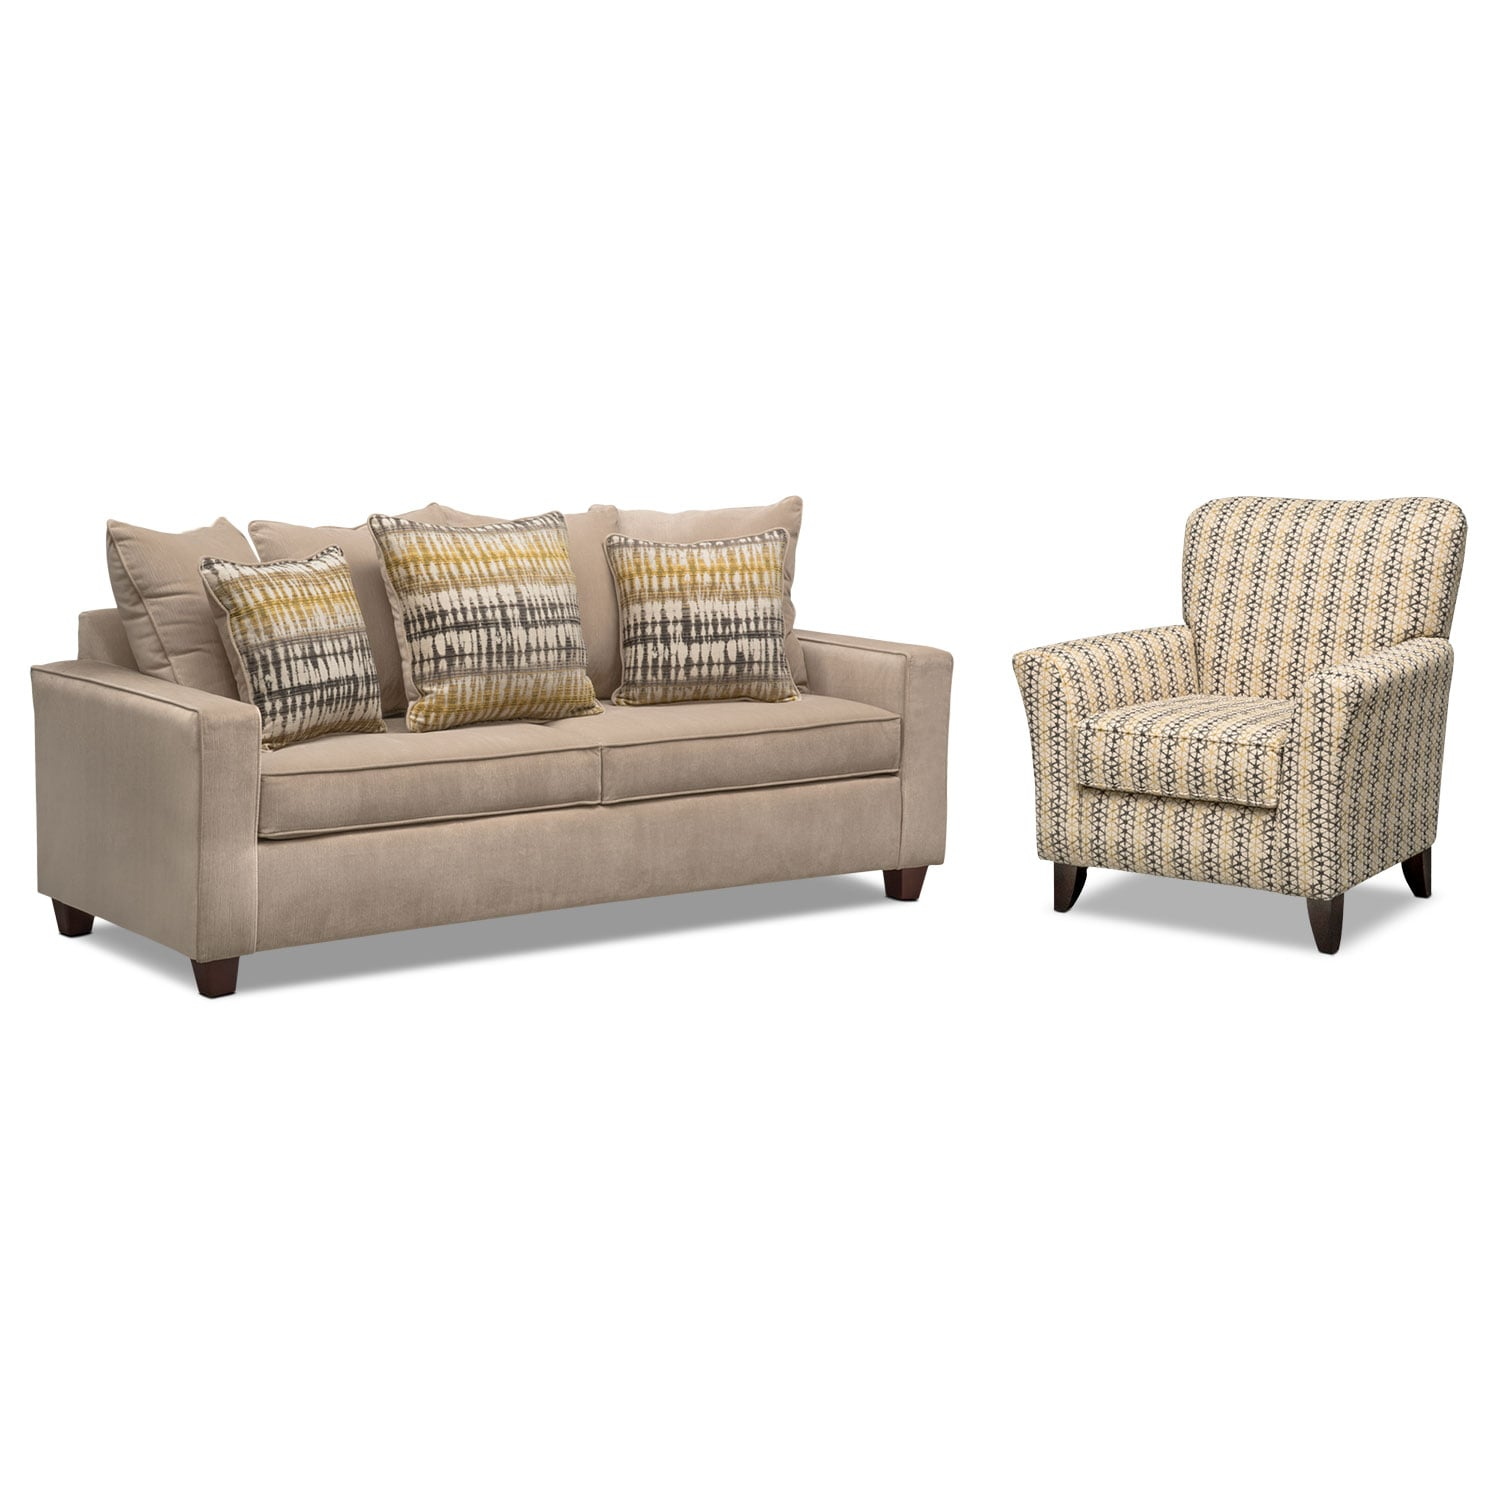 Living Room Furniture - Bryden Sofa and Accent Chair Set - Beige